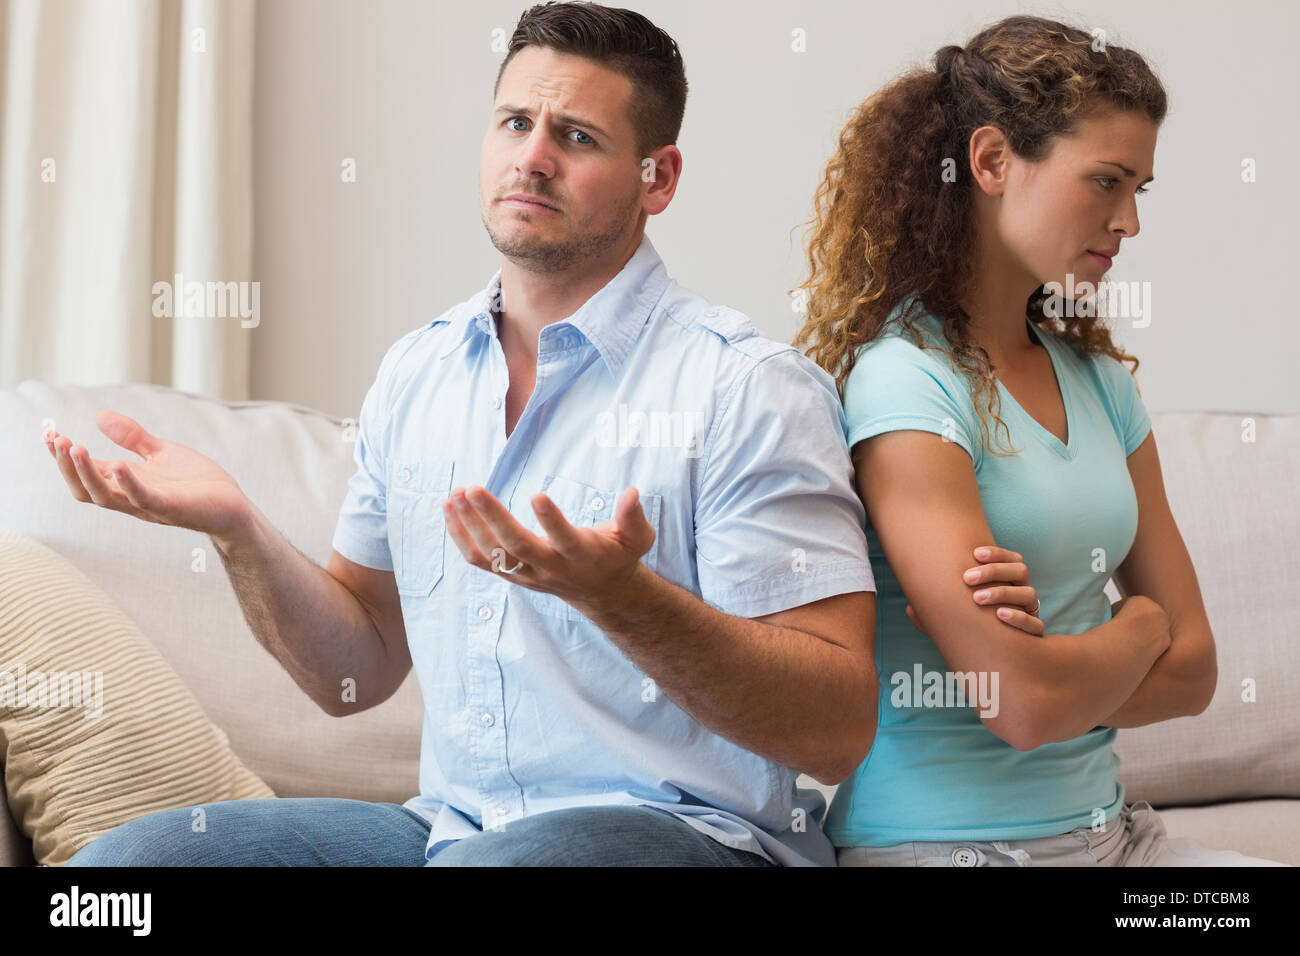 Man gesturing while arguing with woman - Stock Image